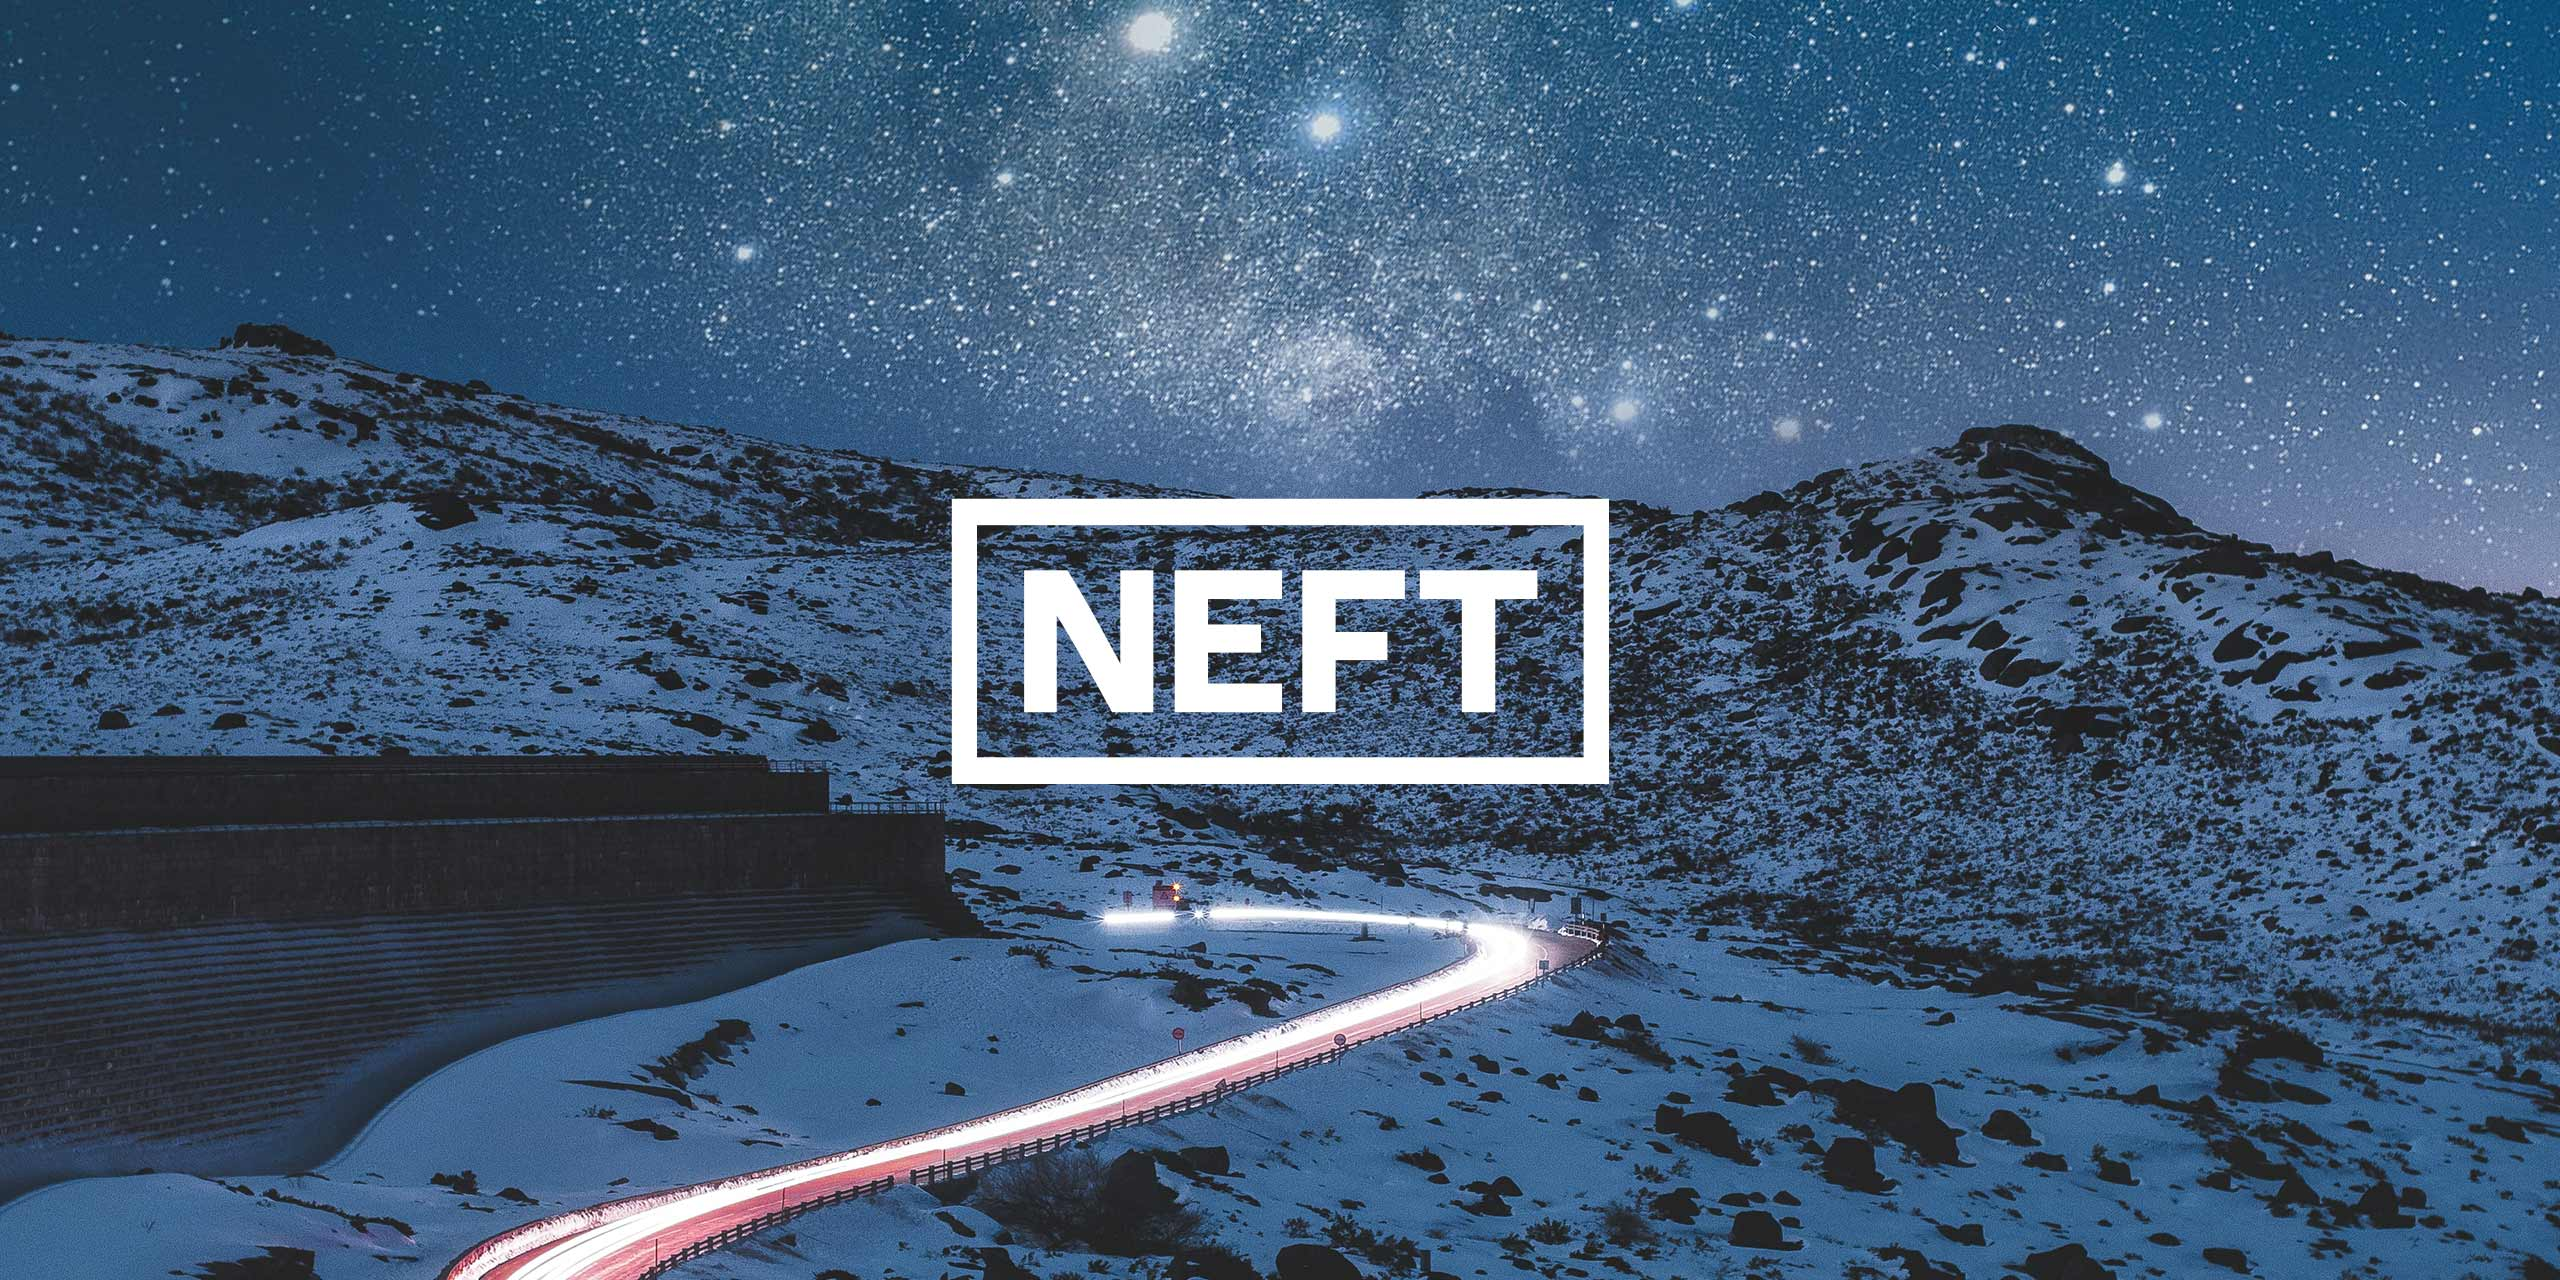 The white NEFT logo center over an image of a road at nighttime under the stars